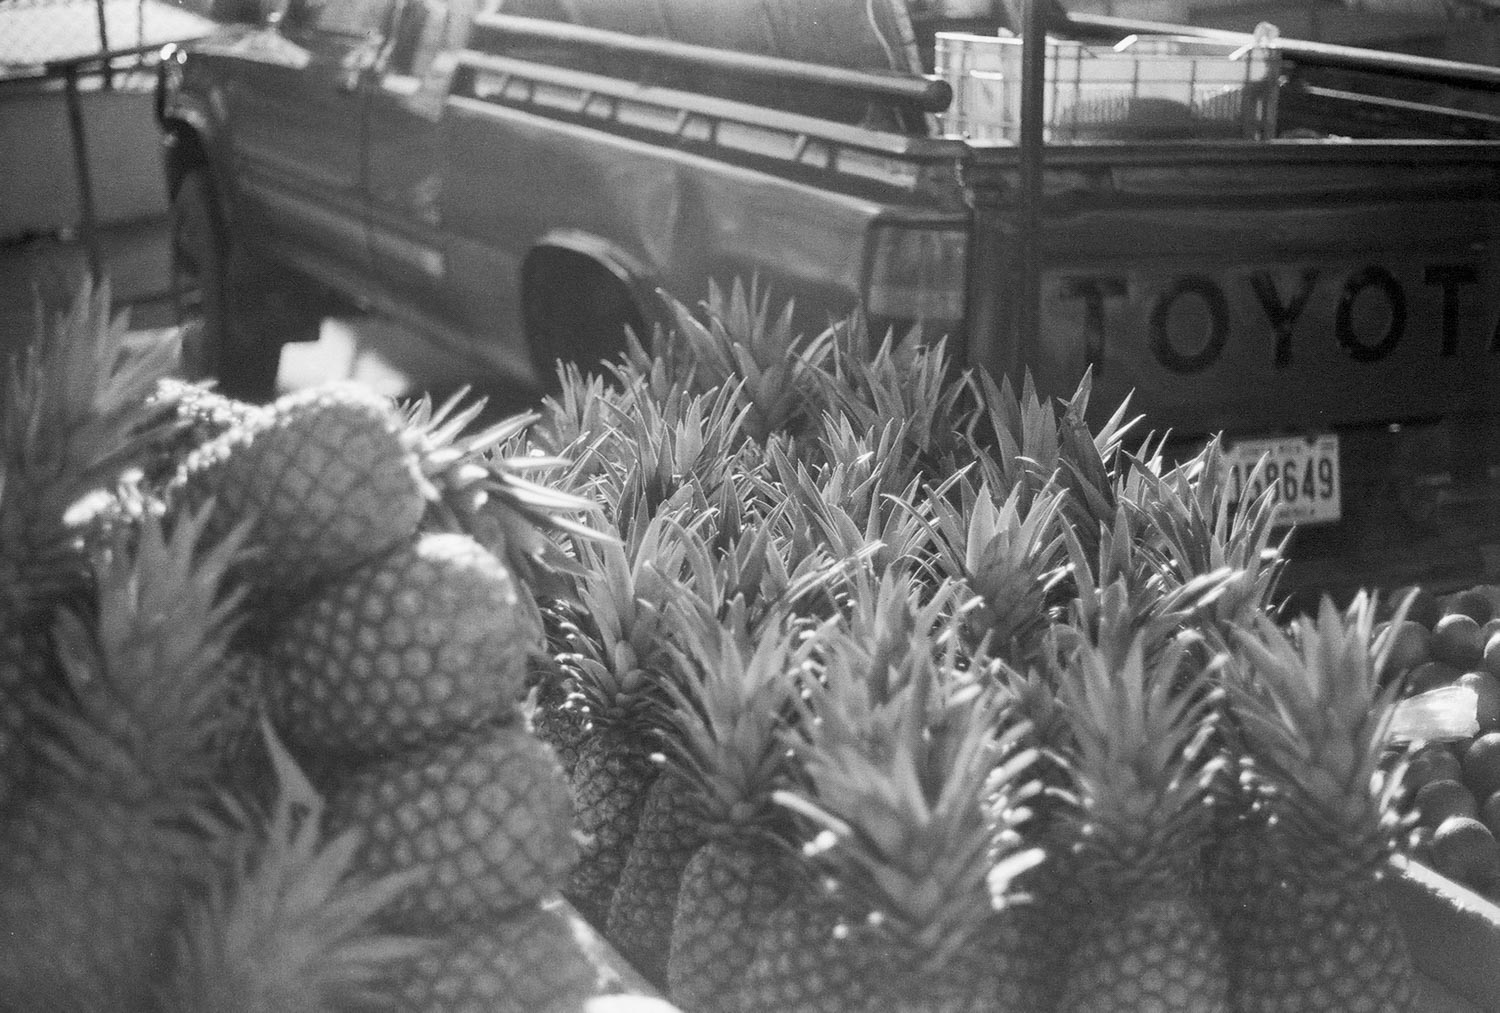 5 Frames With... Fomapan 200 Creative (35mm : EI 200 : Canon A-1) - by Clarence Laboranti